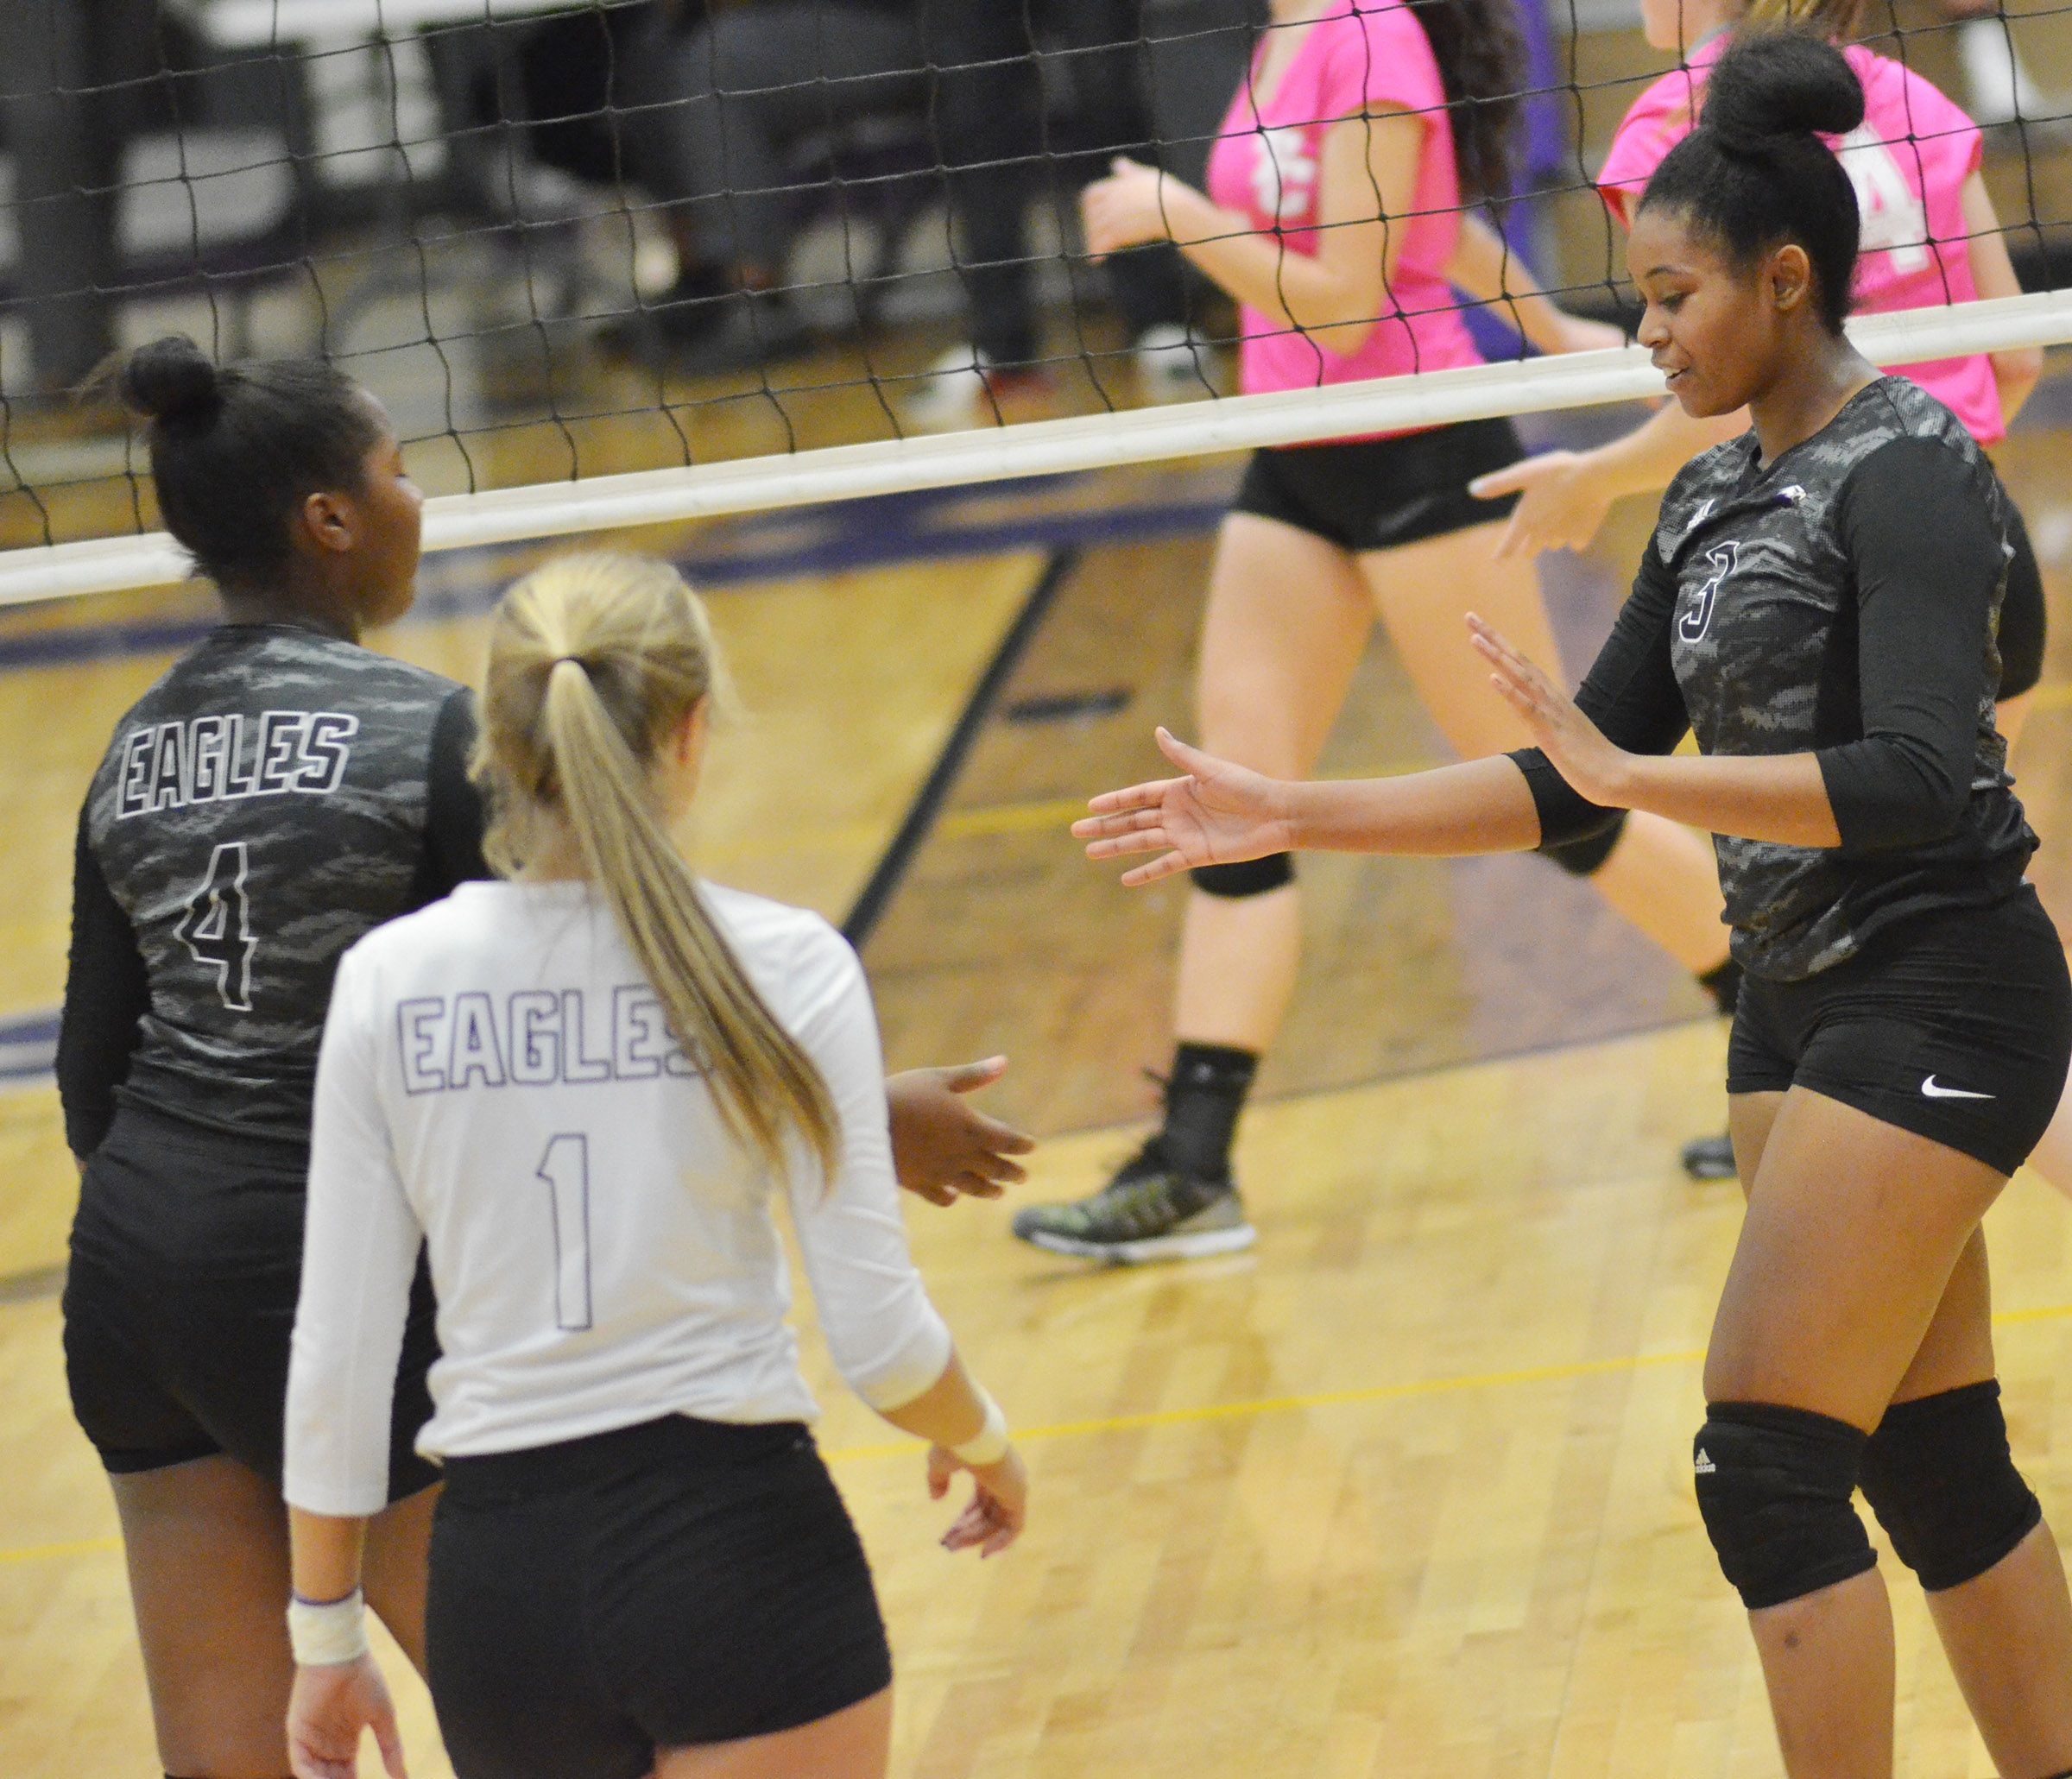 CHS senior Vonnea Smith, at right, celebrates a point with her teammates.